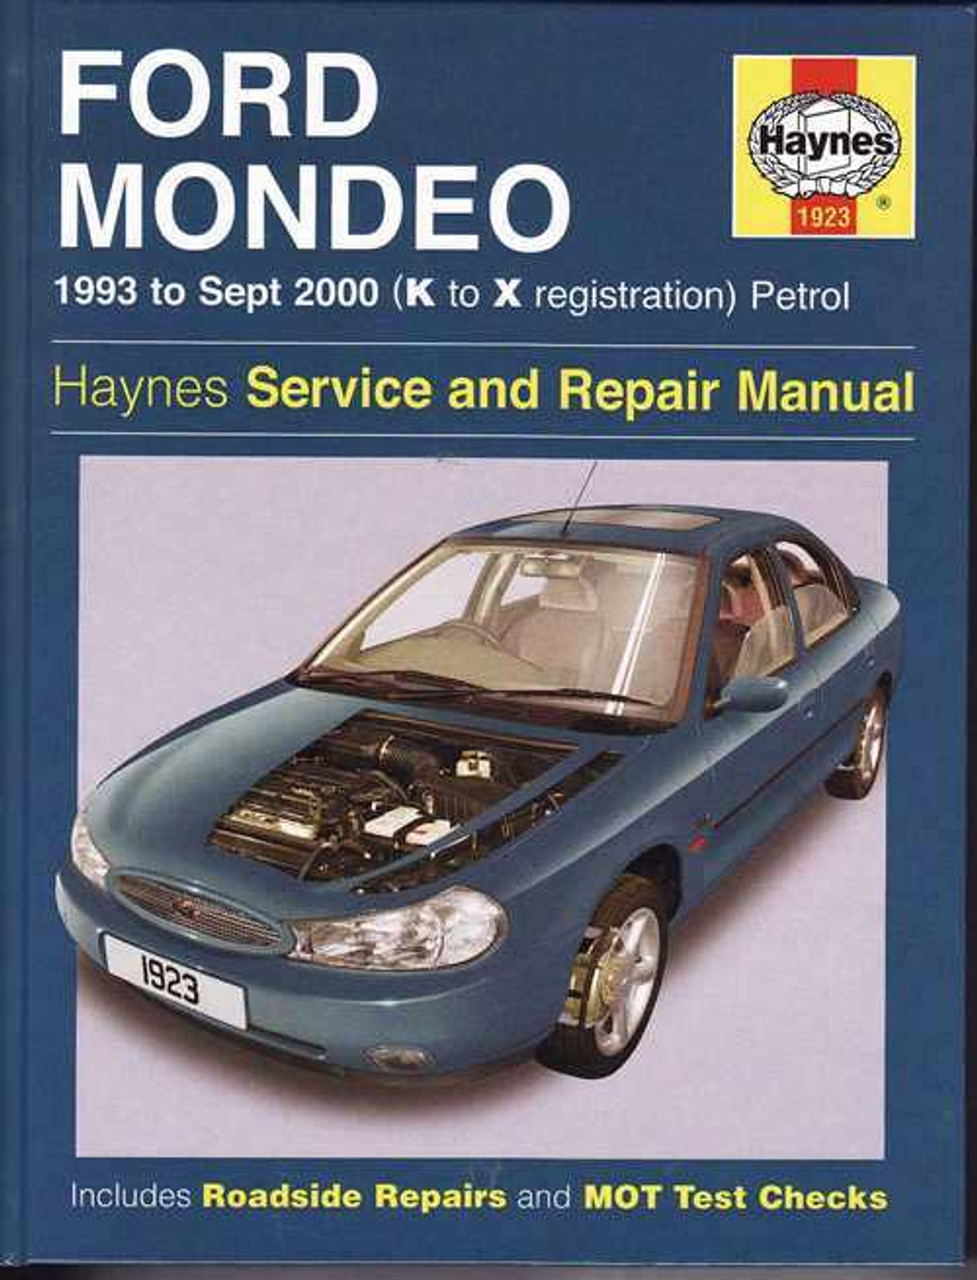 ford mondeo 2003 service manual open source user manual u2022 rh dramatic varieties com Ford Mondeo 2003 Lock Pin 1995 Ford Mondeo